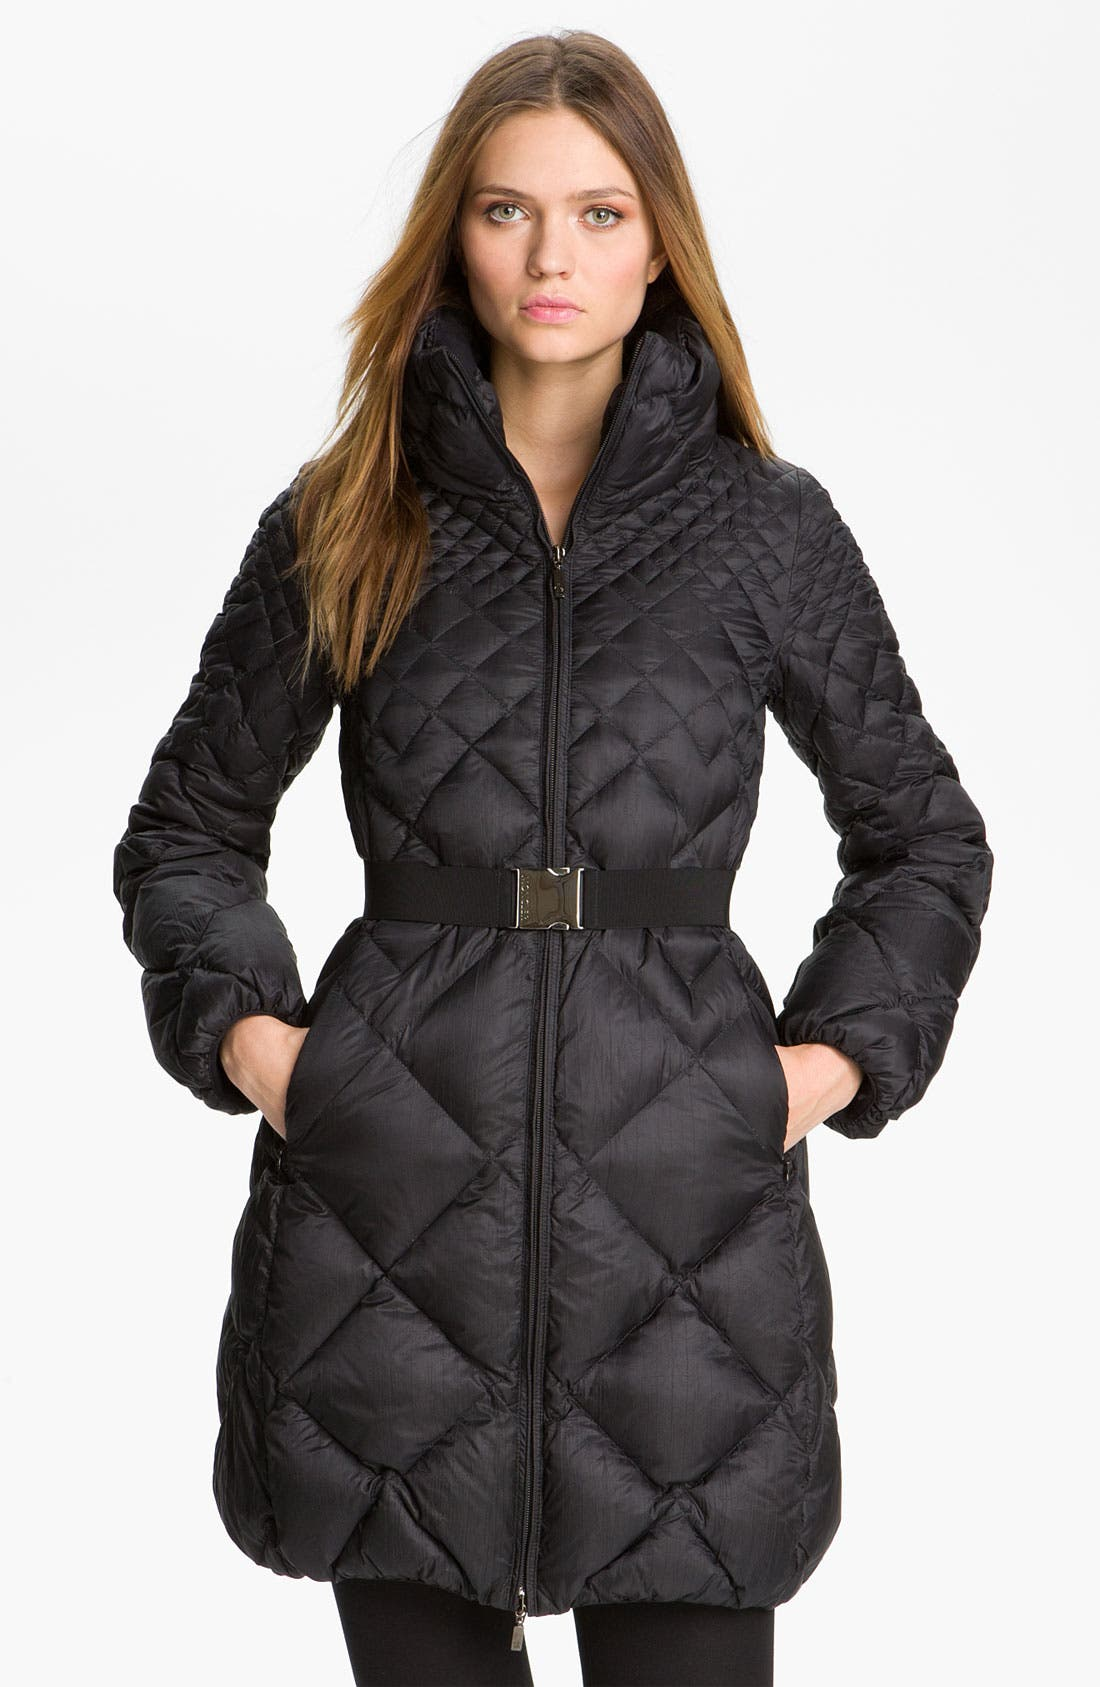 Alternate Image 1 Selected - Moncler 'Bourdon' Quilted Down Jacket